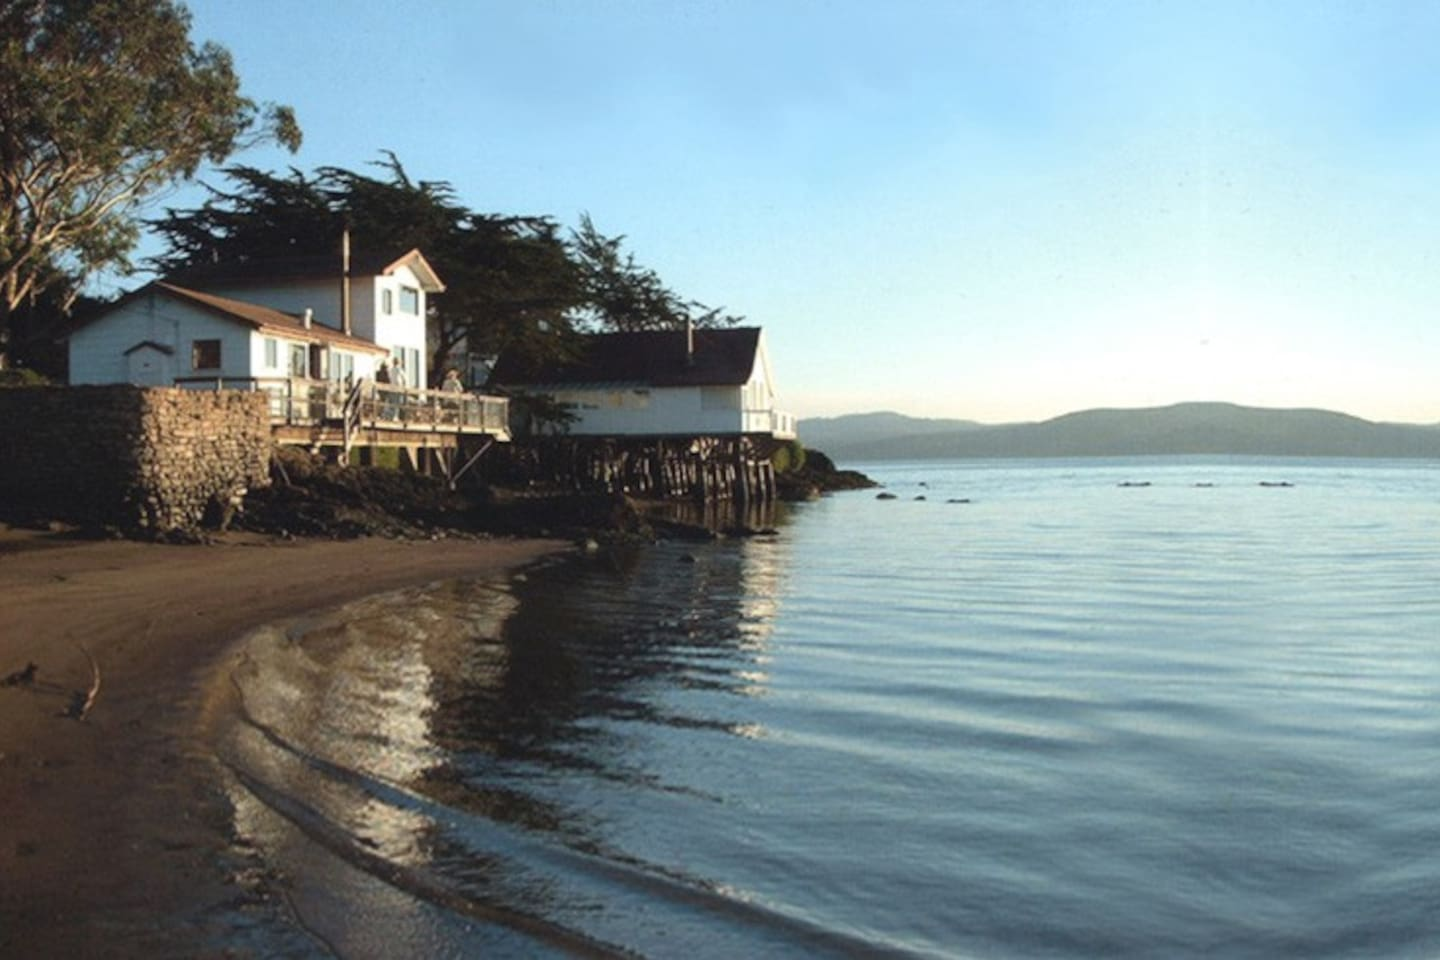 Pristine Bleu Bay Cove is perfect for your next getaway